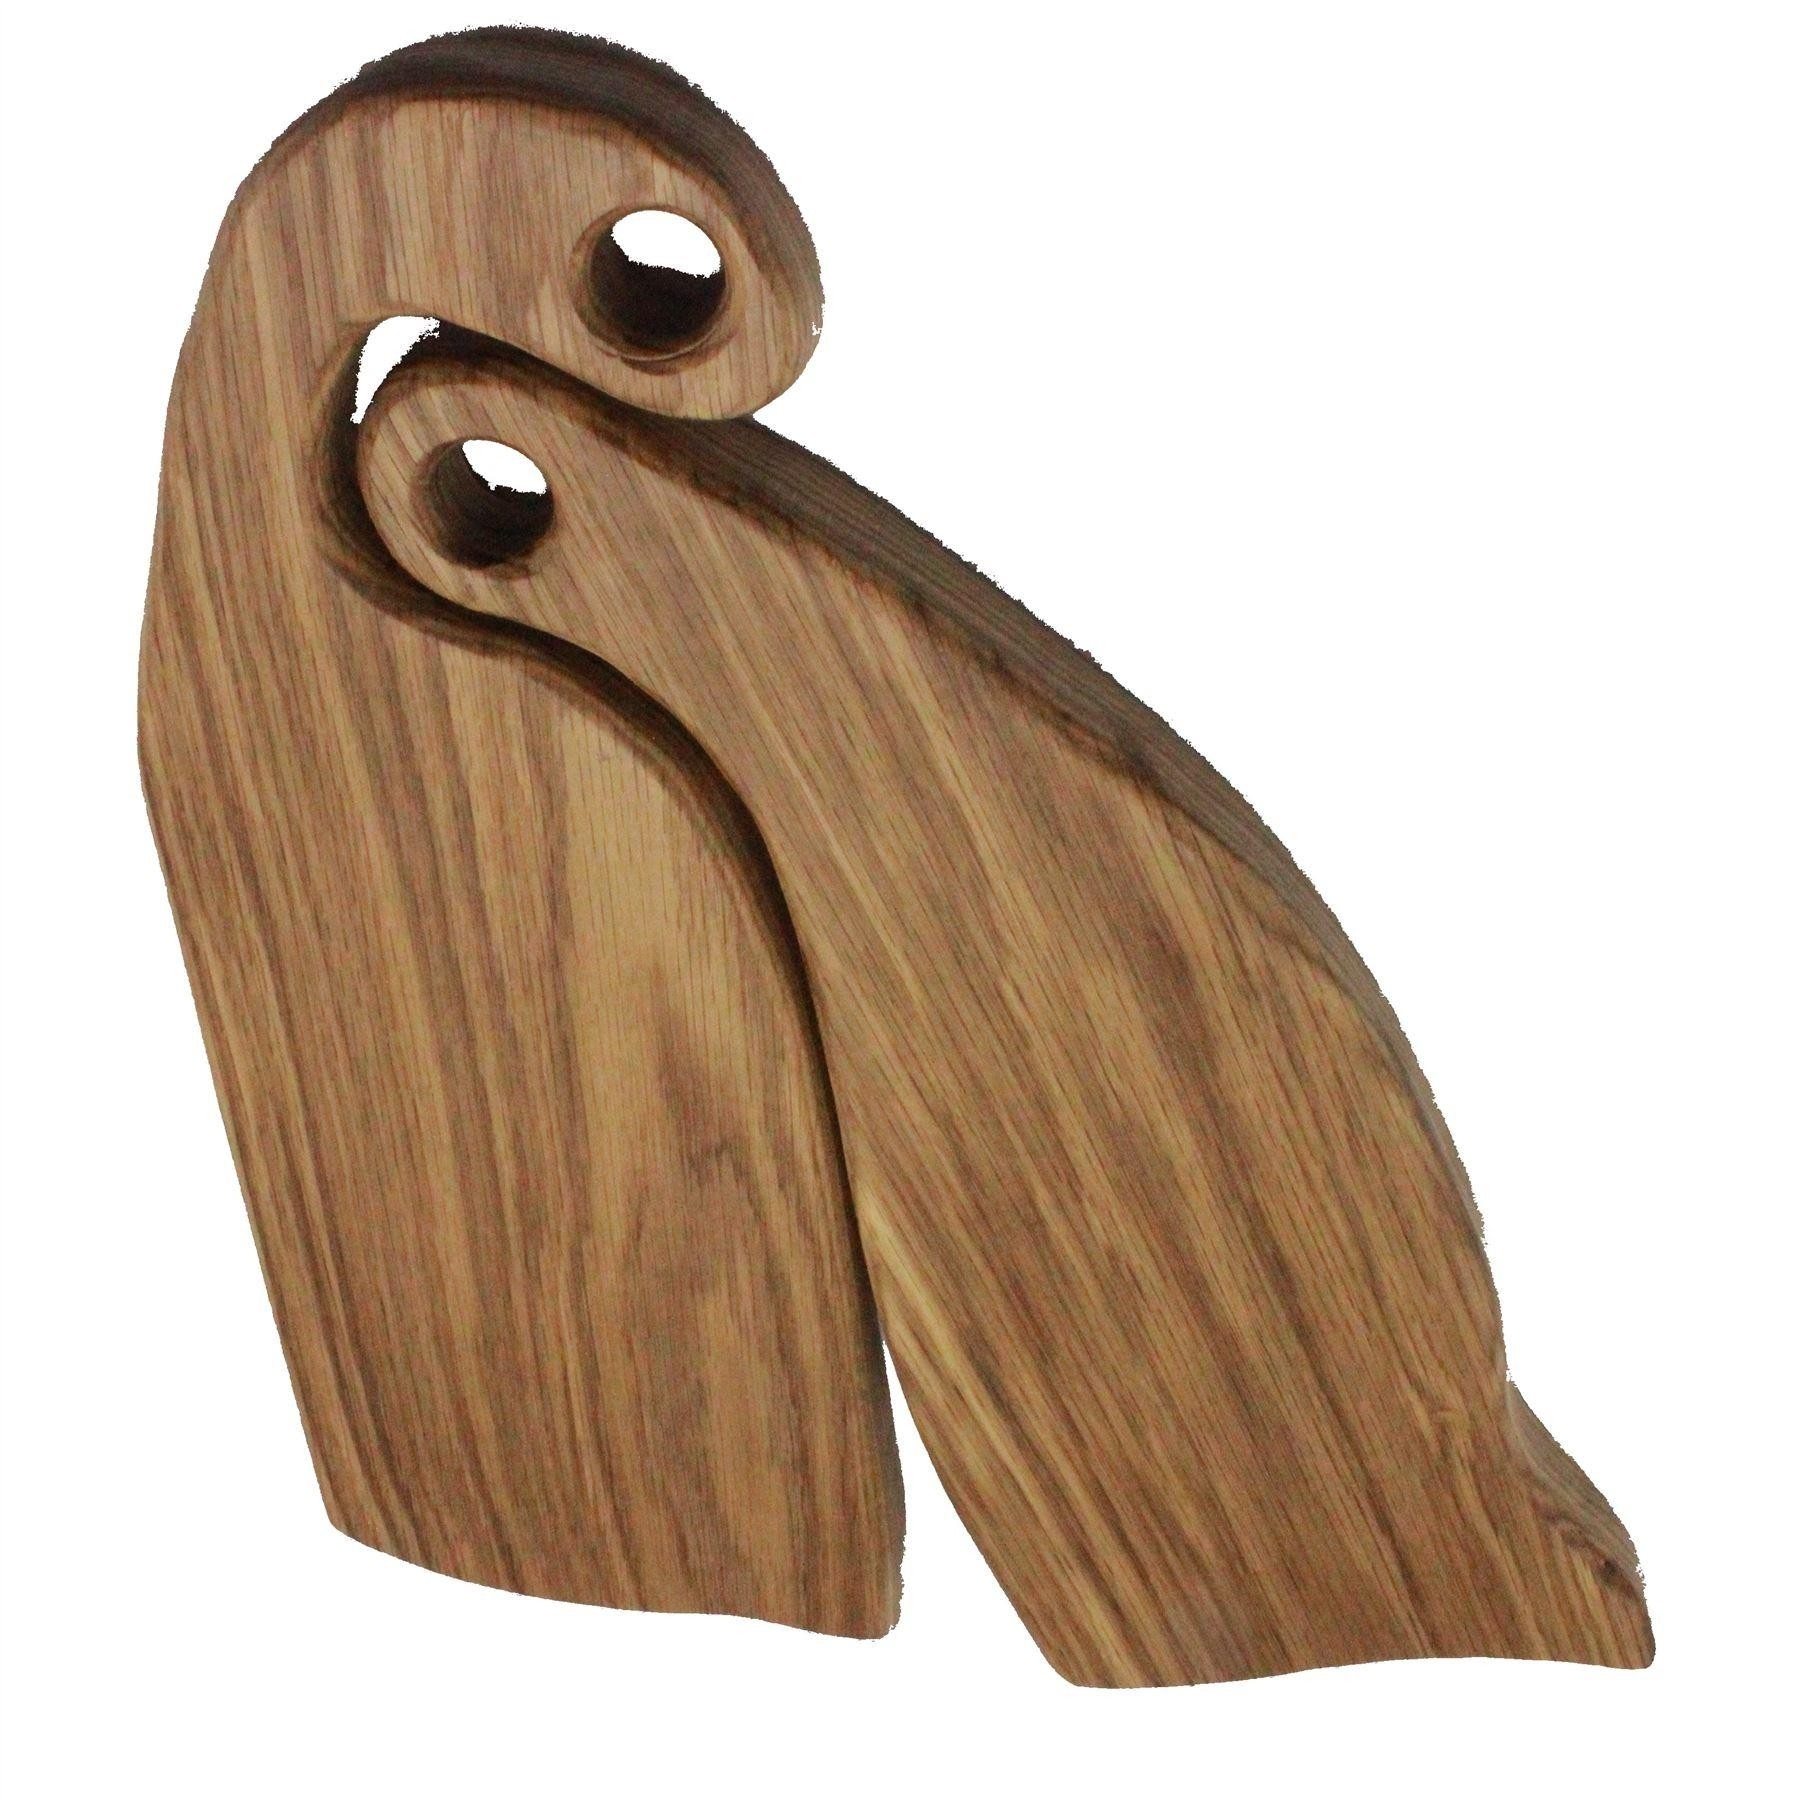 2 Oak wood rustic board with curved hugging chopping boards handcrafted